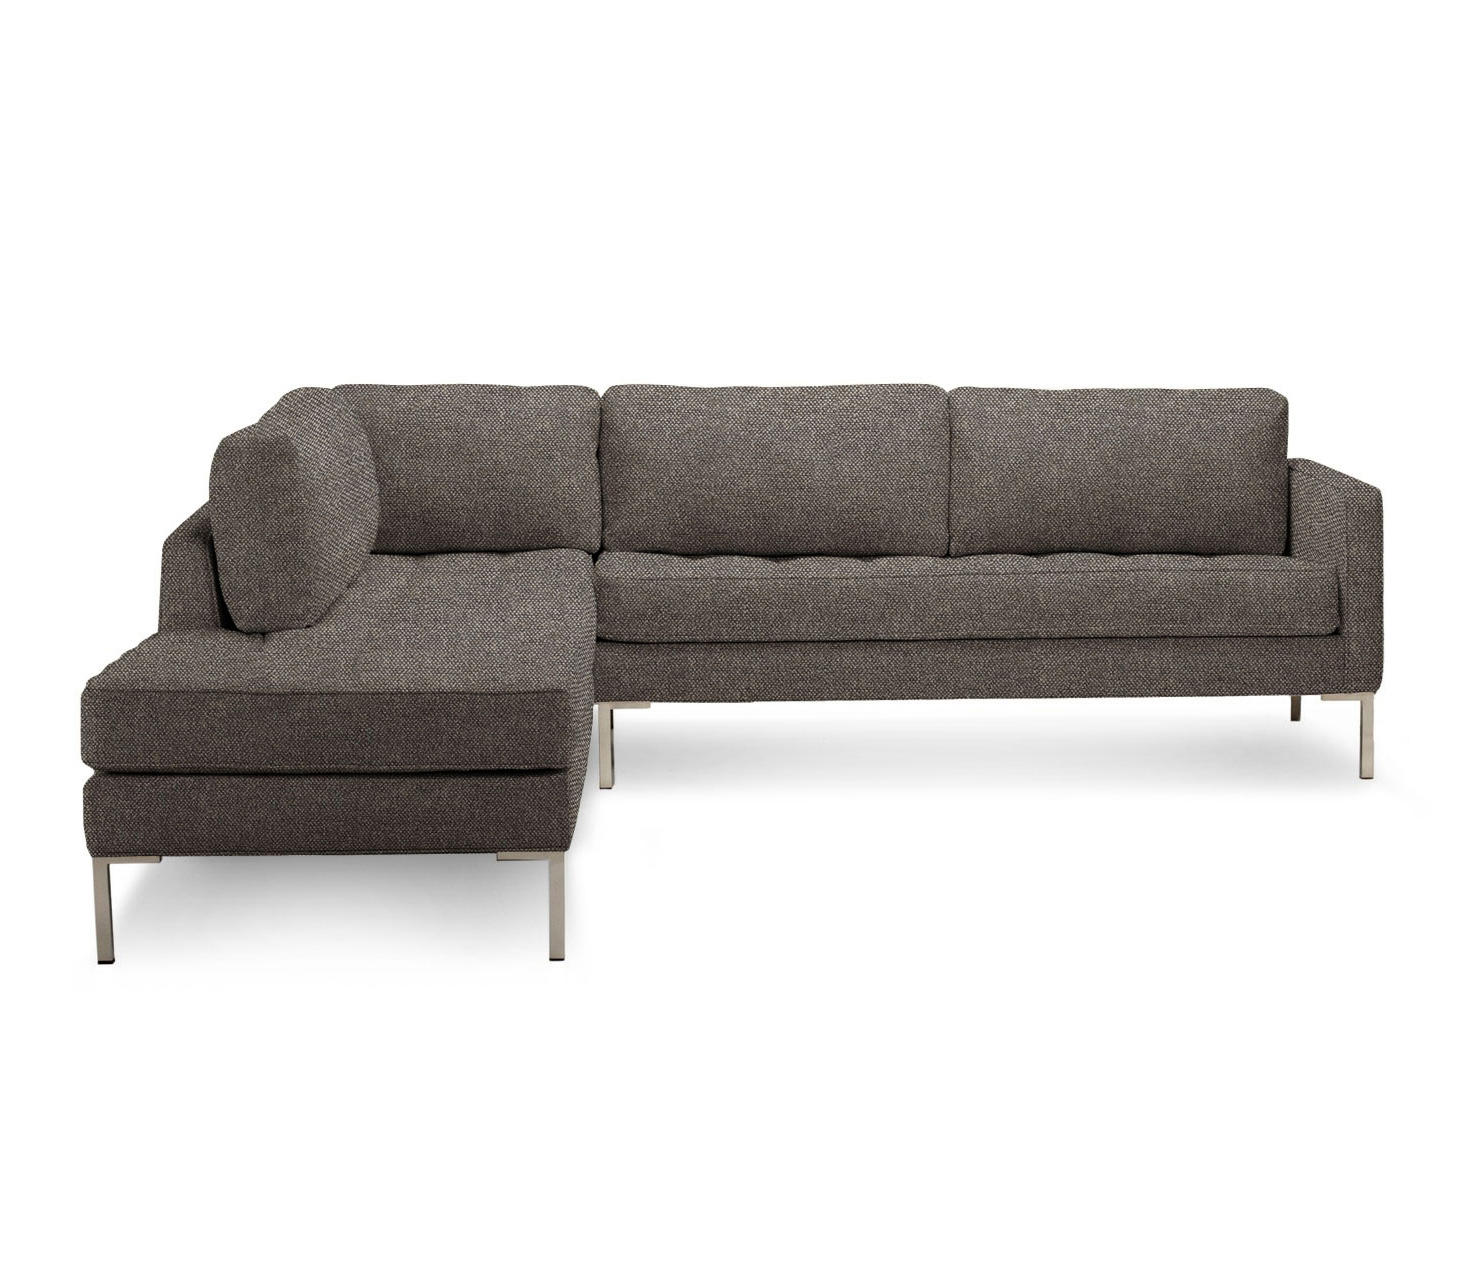 paramount sofa manhattan chaise sectional with bed left divani blu dot architonic